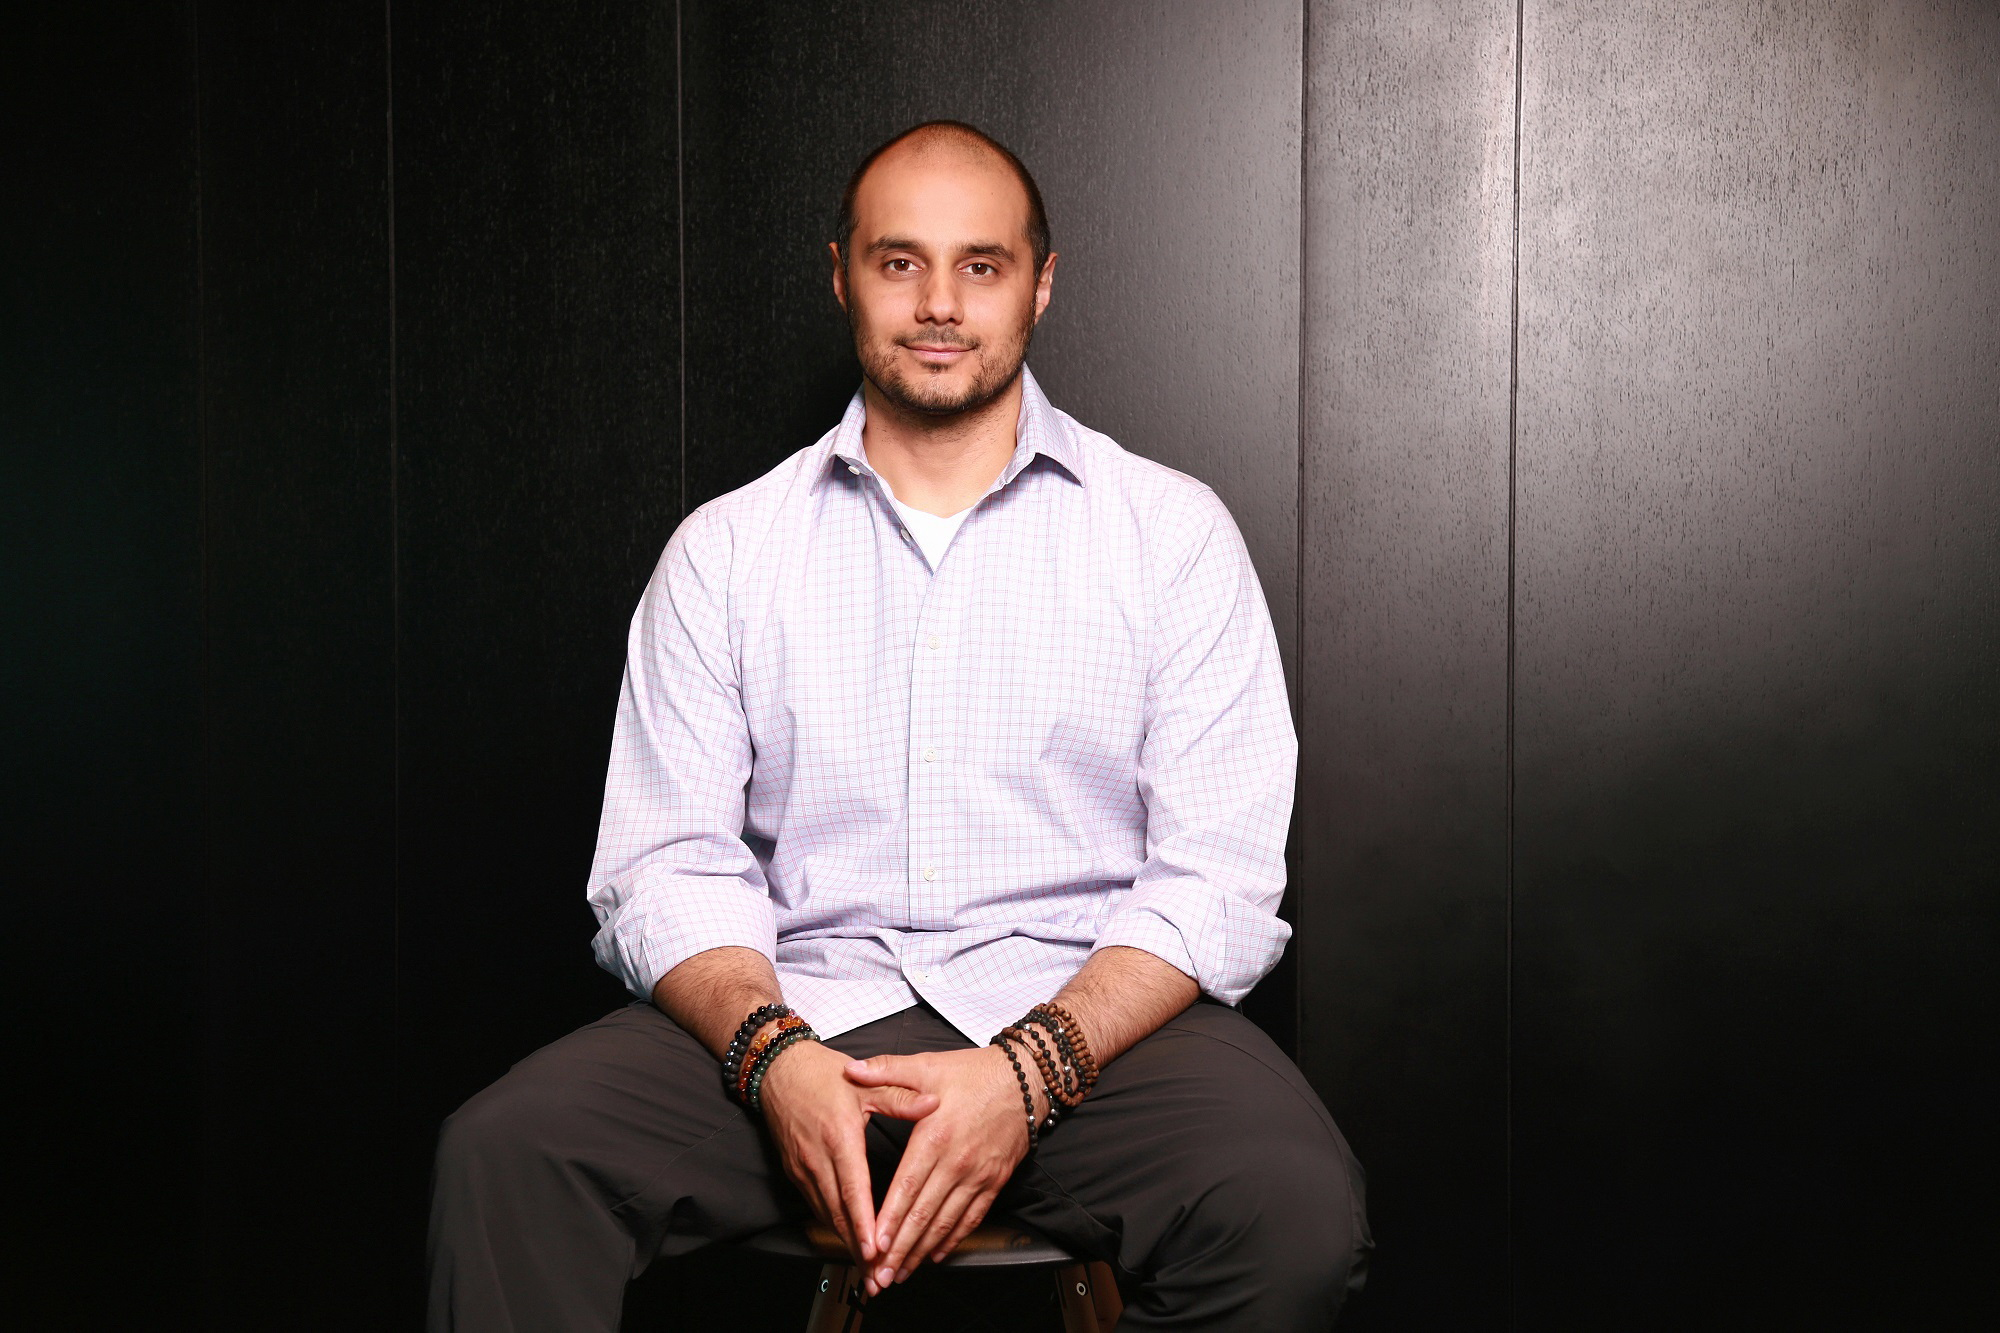 Prince Khaled bin Alwaleed, Founder and CEO of KBW Ventures